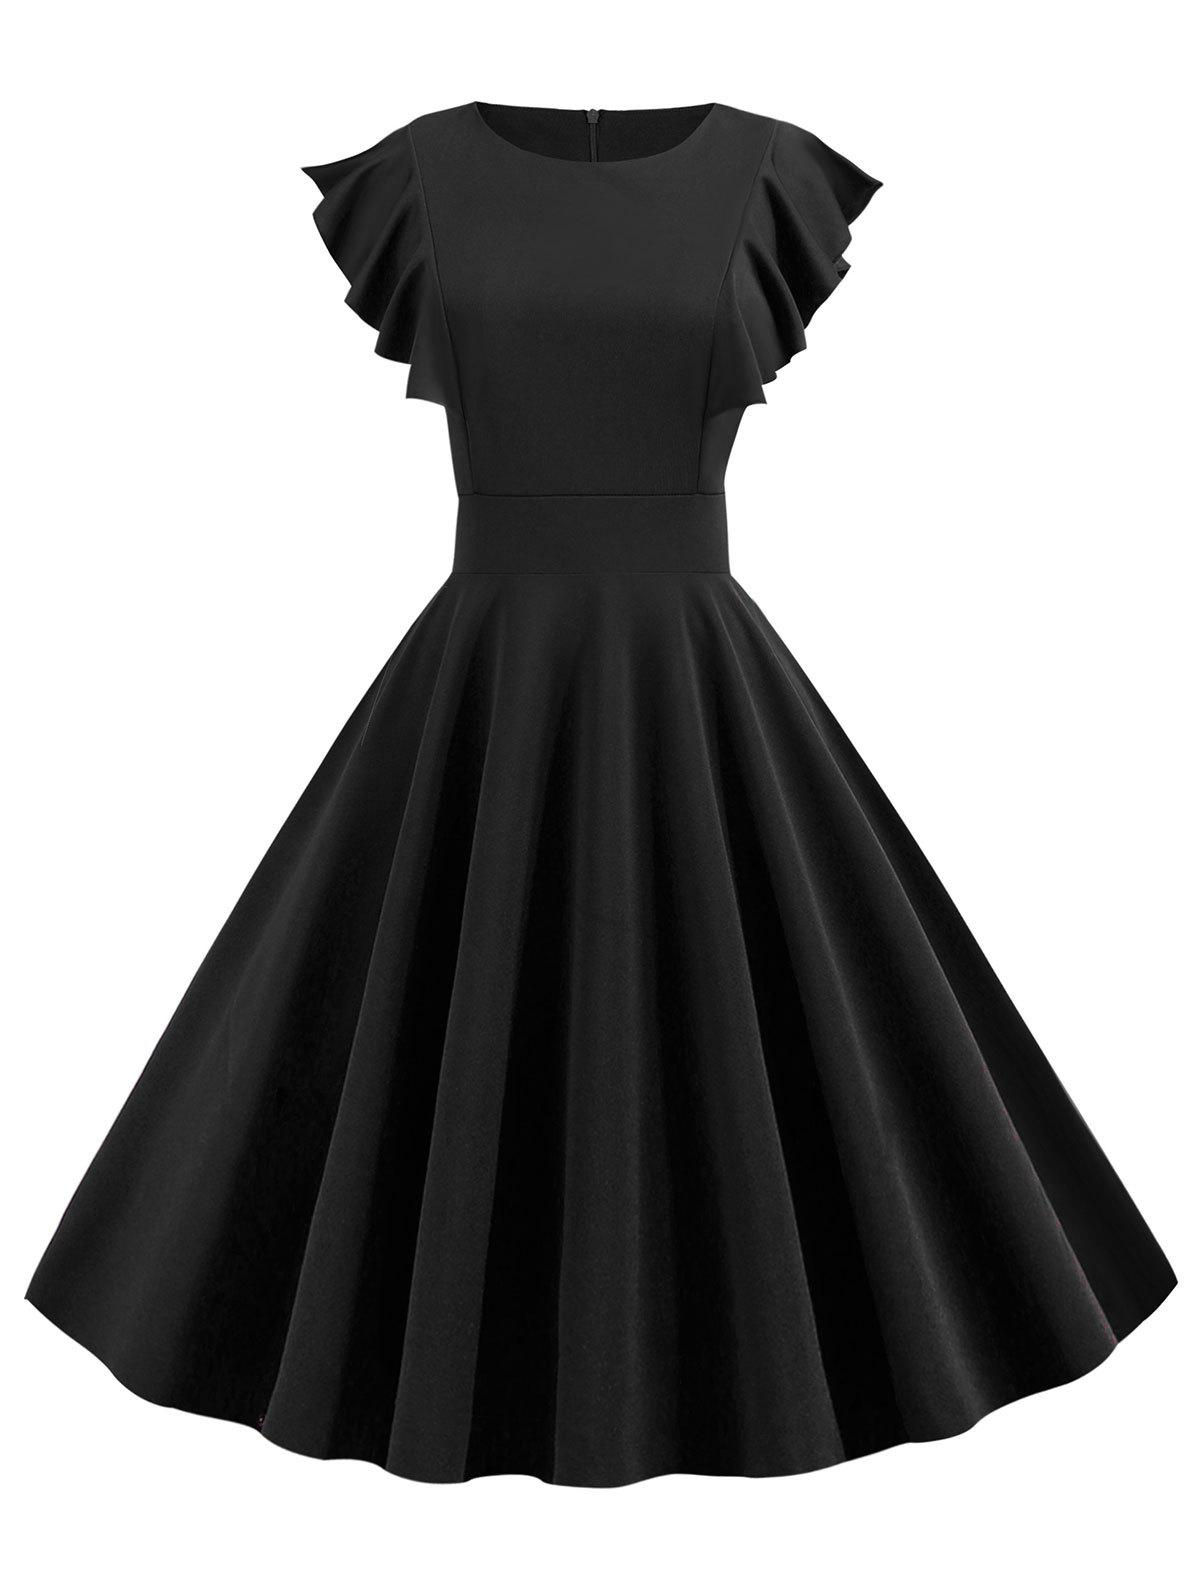 Ruffle Fit and Flare Dress - BLACK 2XL